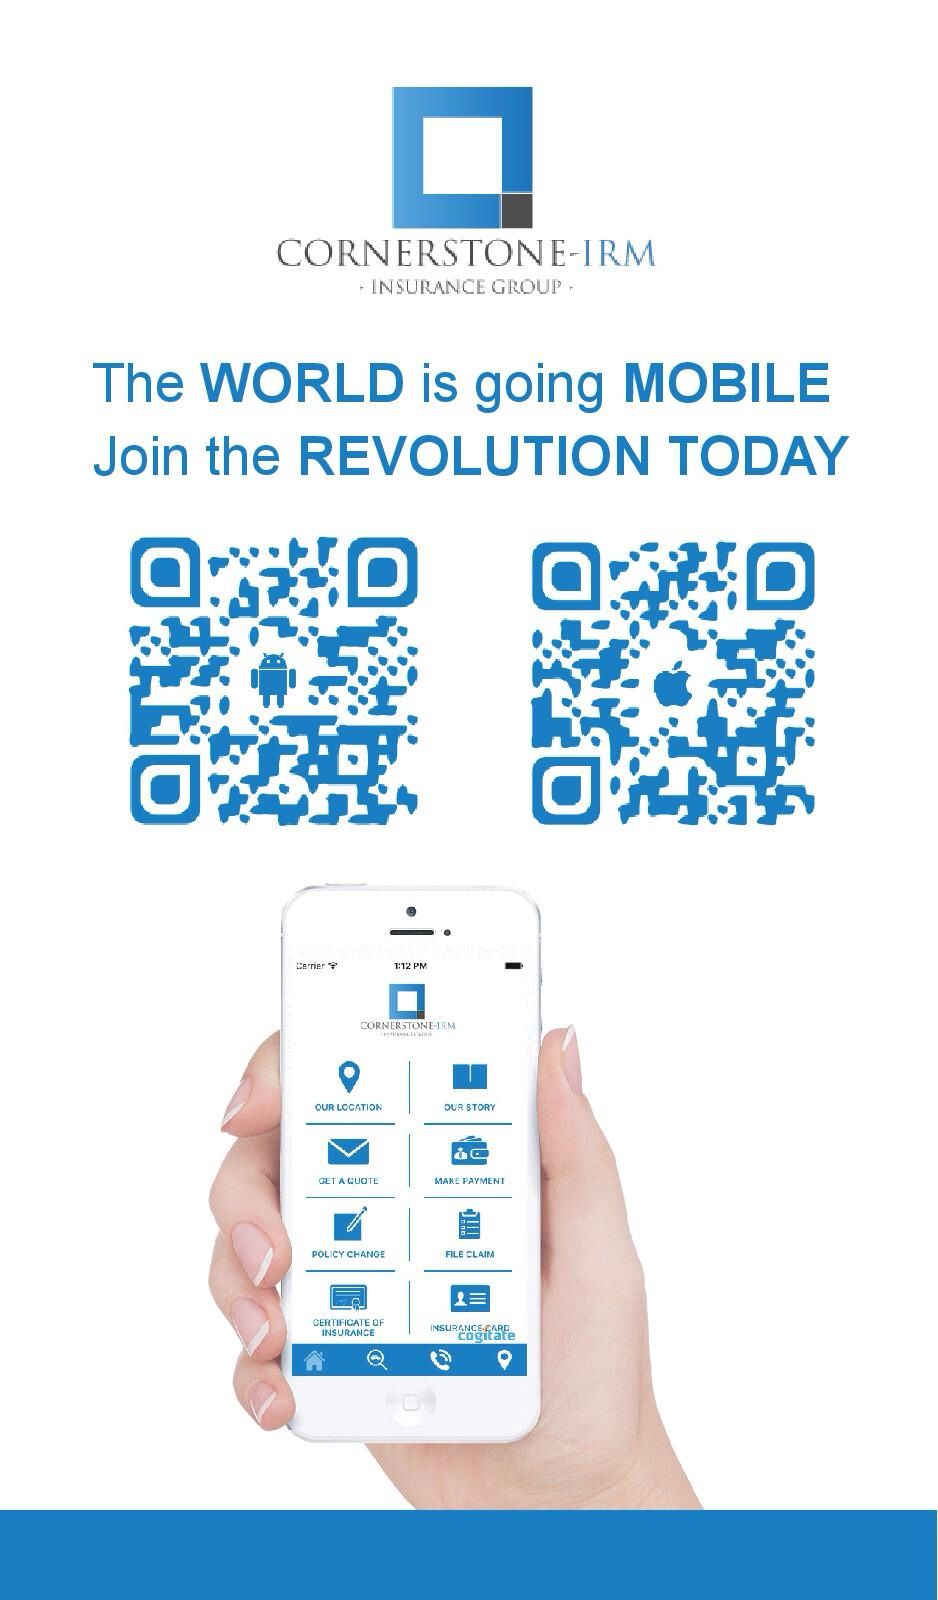 The WORLD is going MOBILE. Join the REVOLUTION today! The